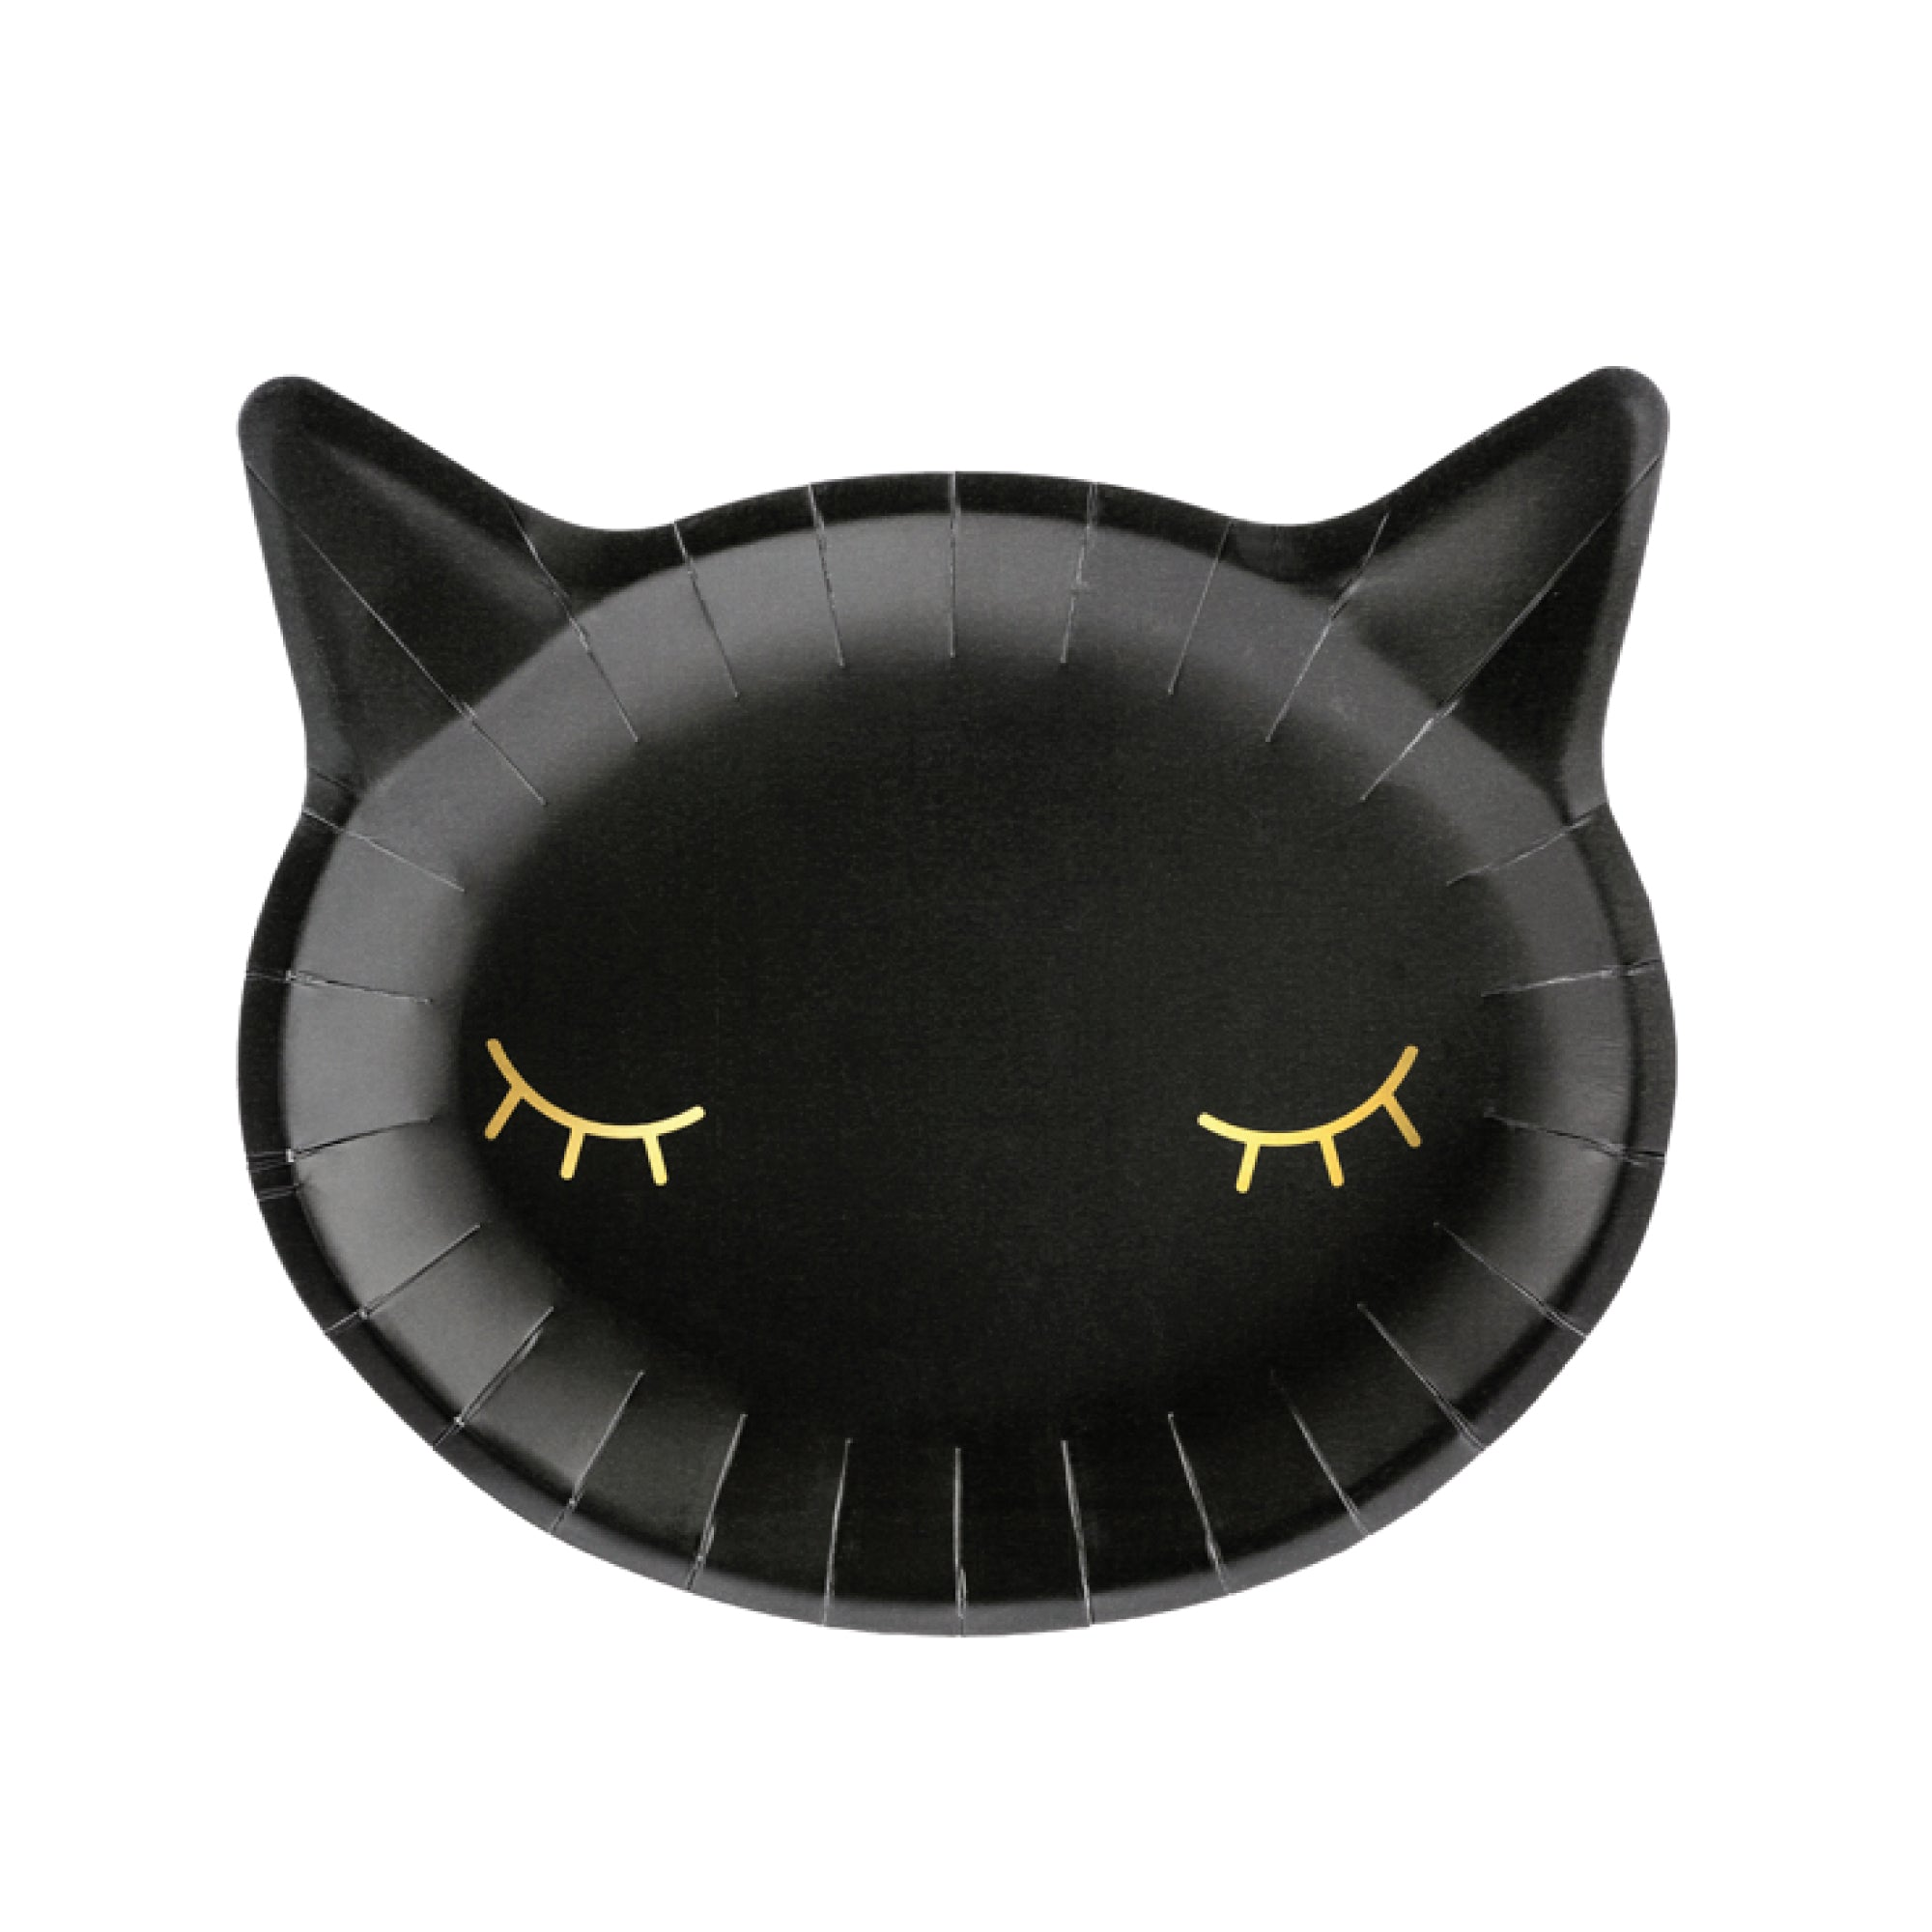 Halloween black cat plates